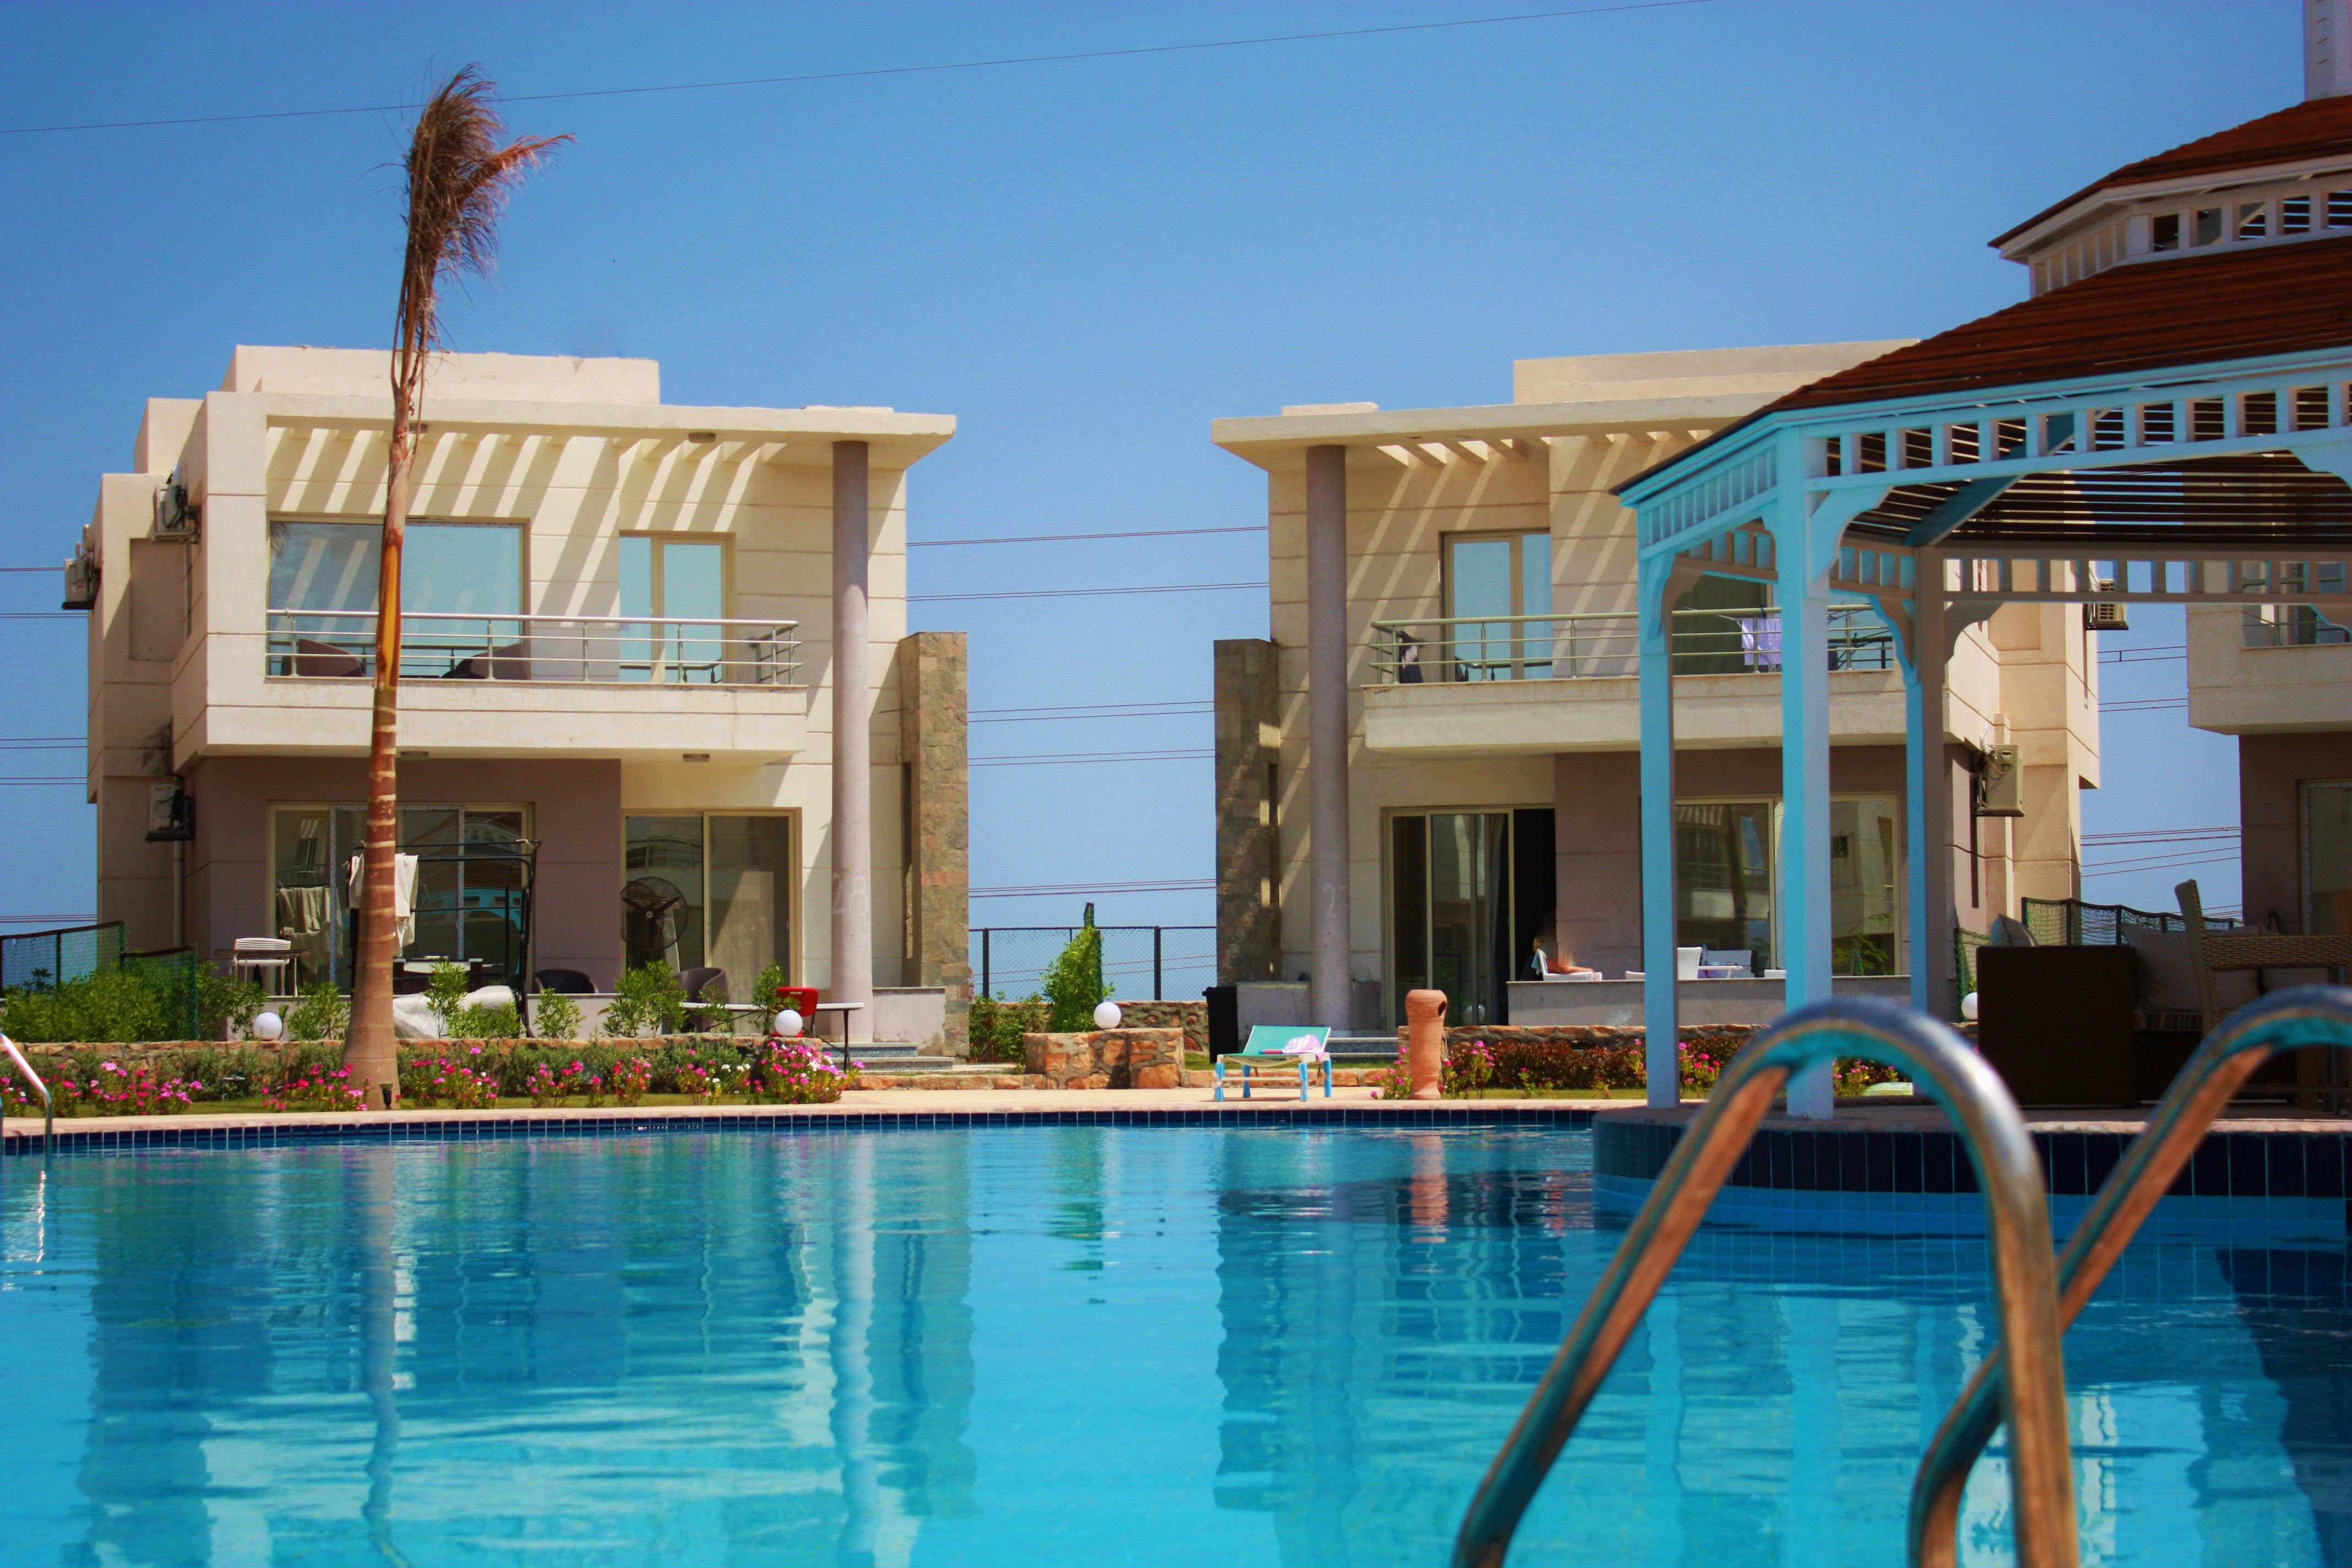 For Sale Villa With Swimming Pool Twin Villa Only 81 190 Euro 2 Floors 3 Bed Rooms 3 Bathrooms 195 M2 L Hurghada Big Pools Private Garden